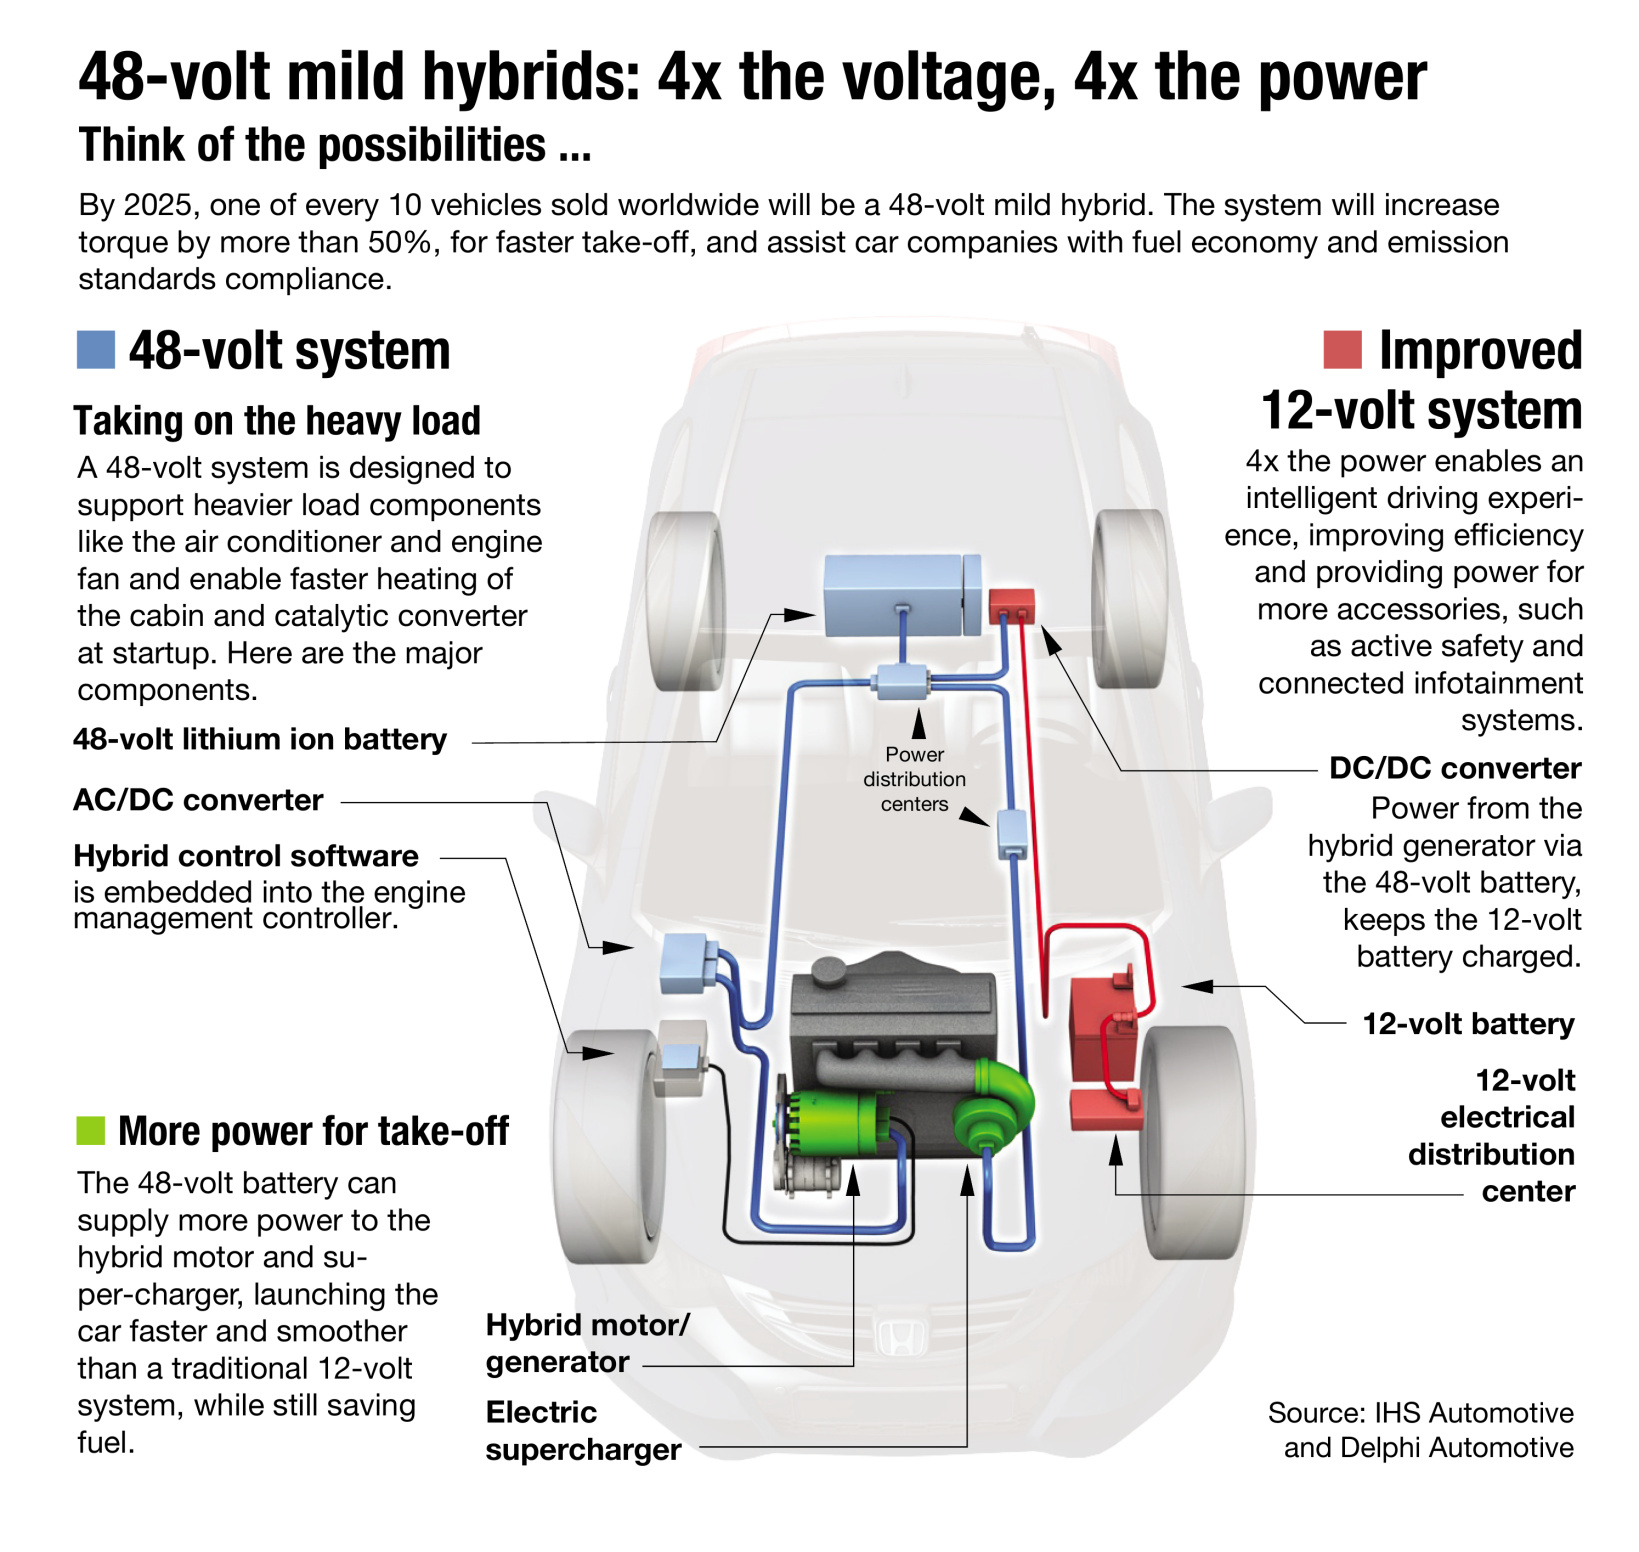 graphic showing the underside of a 48-volt mild hybrid vehicle and its key propulsion technologies